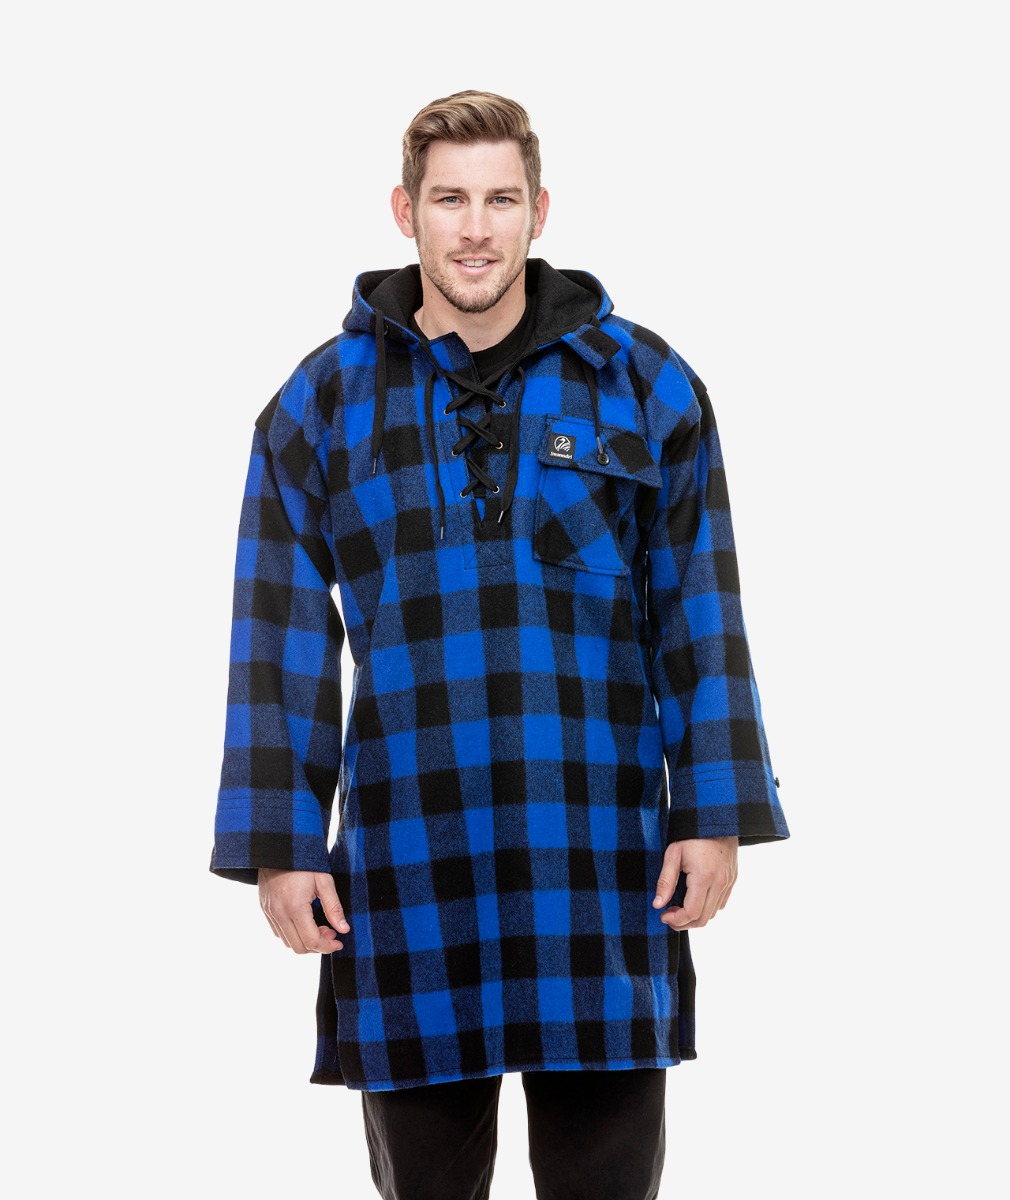 Men's Original Wool Bushshirt in Blue/Black Check